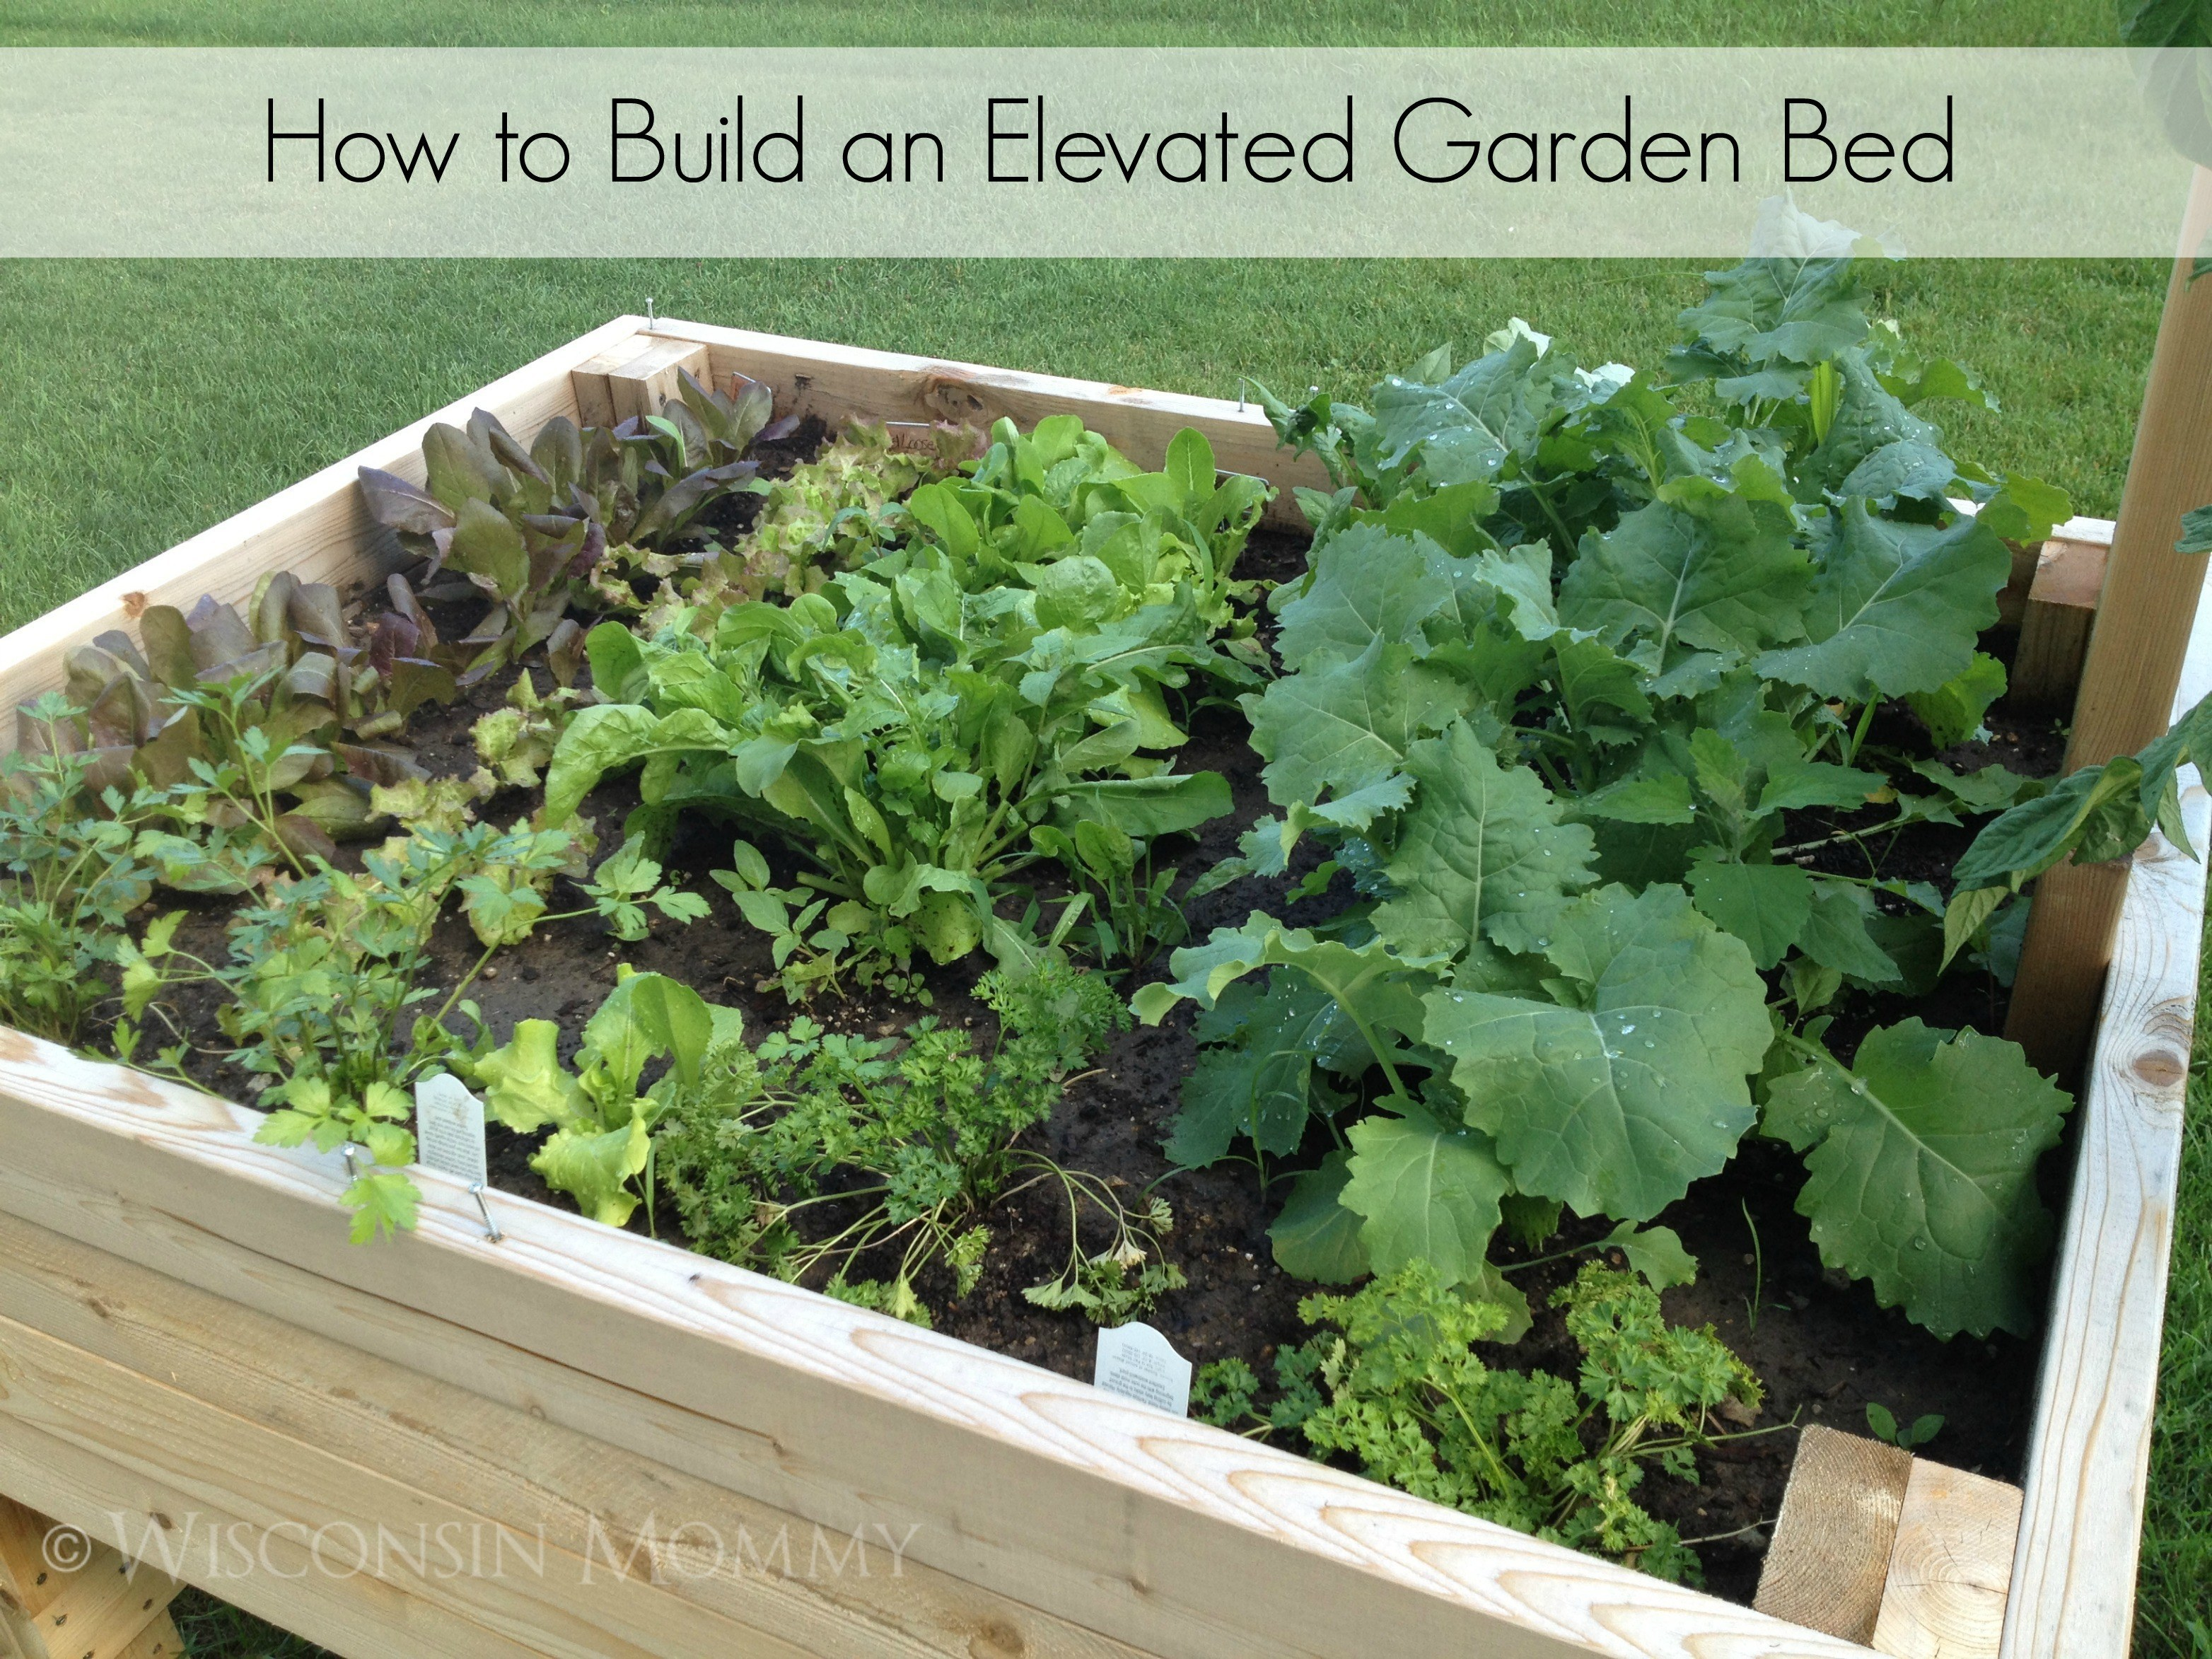 Build your own raised garden bed - Build Your Own Raised Garden Bed 50